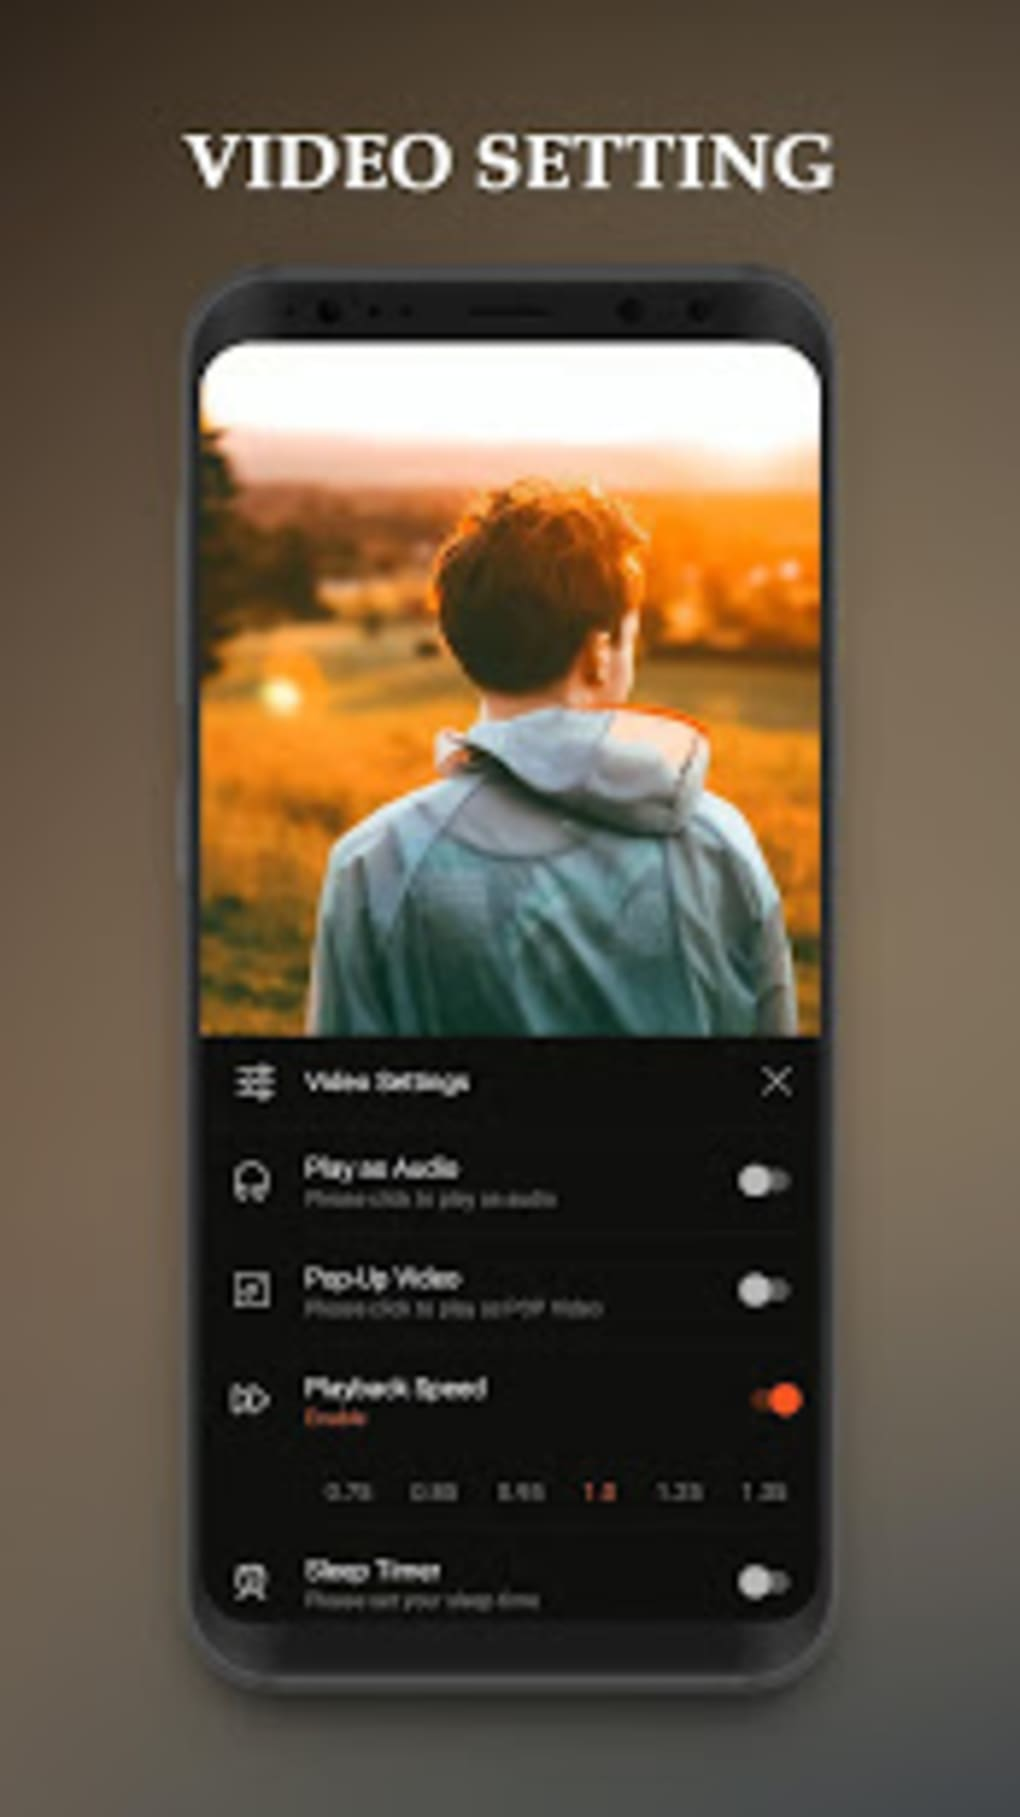 QPlayer HD Video Player for Android - Download